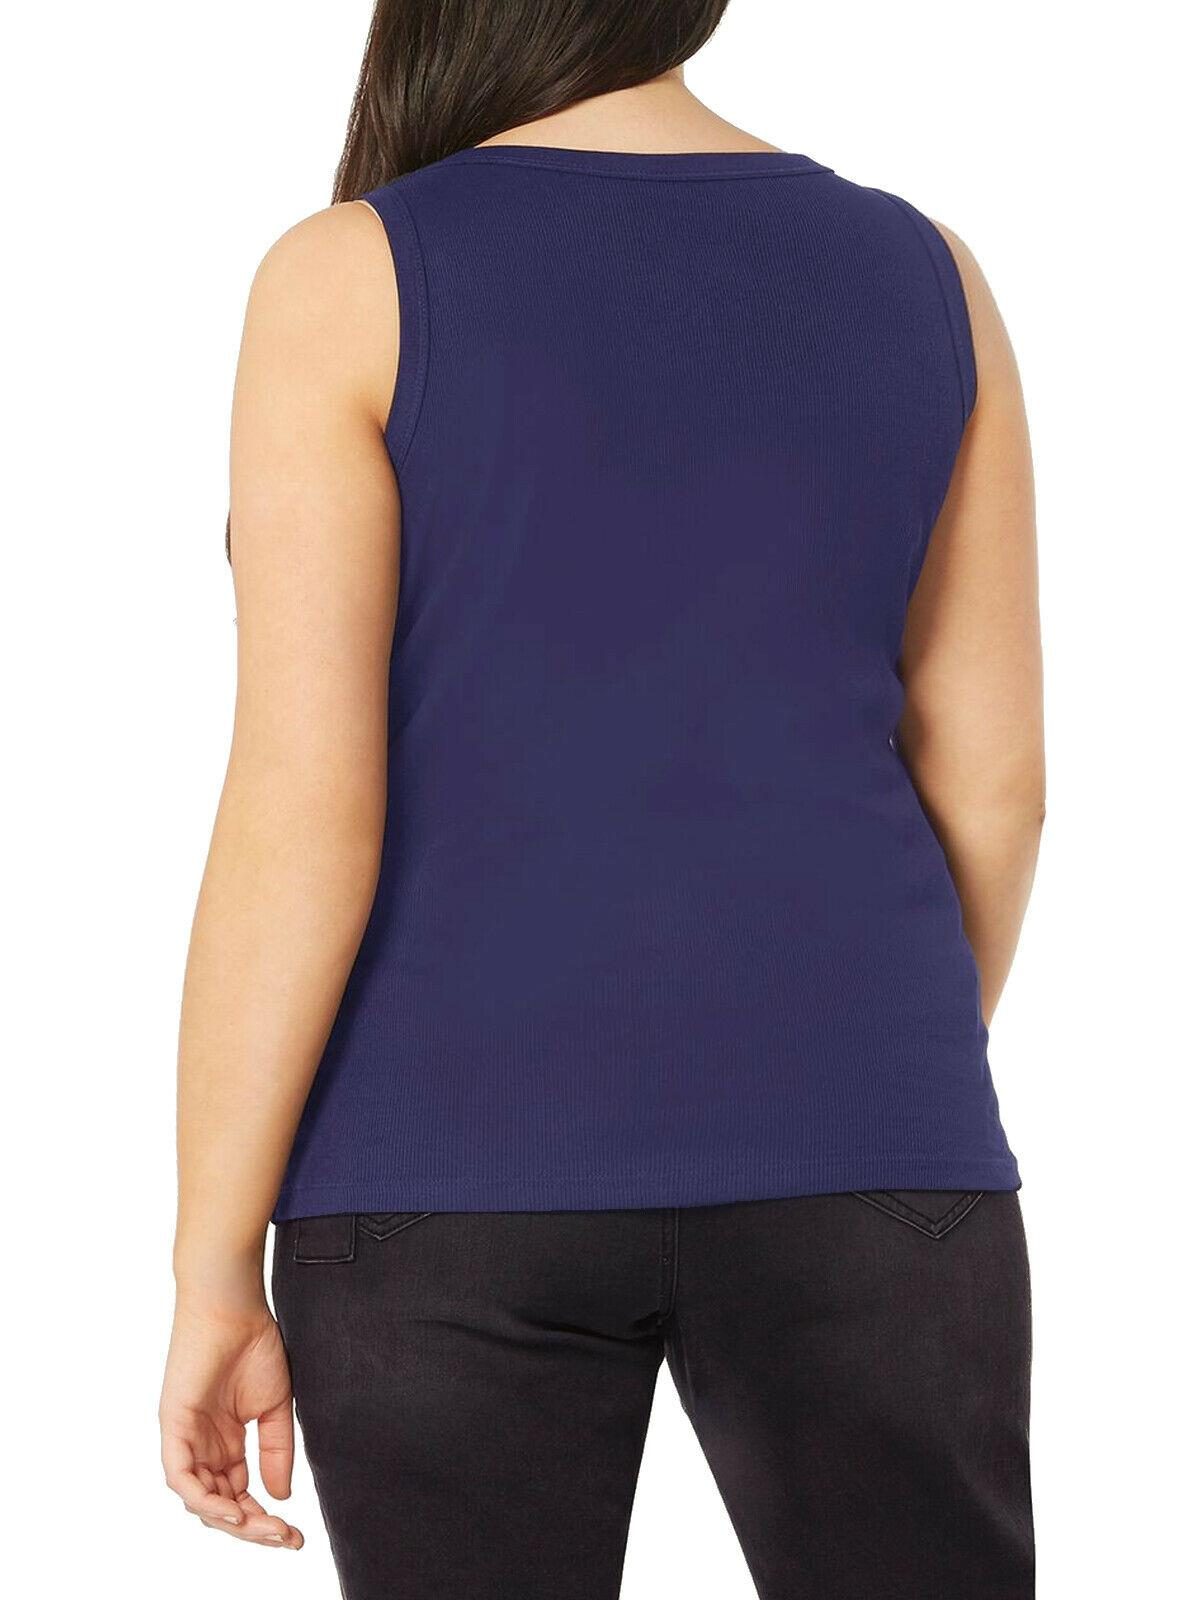 Ex-Evans-Ladies-Womens-Ribbed-Vest-Top-Casual-Size-14-32-All-Cols thumbnail 18